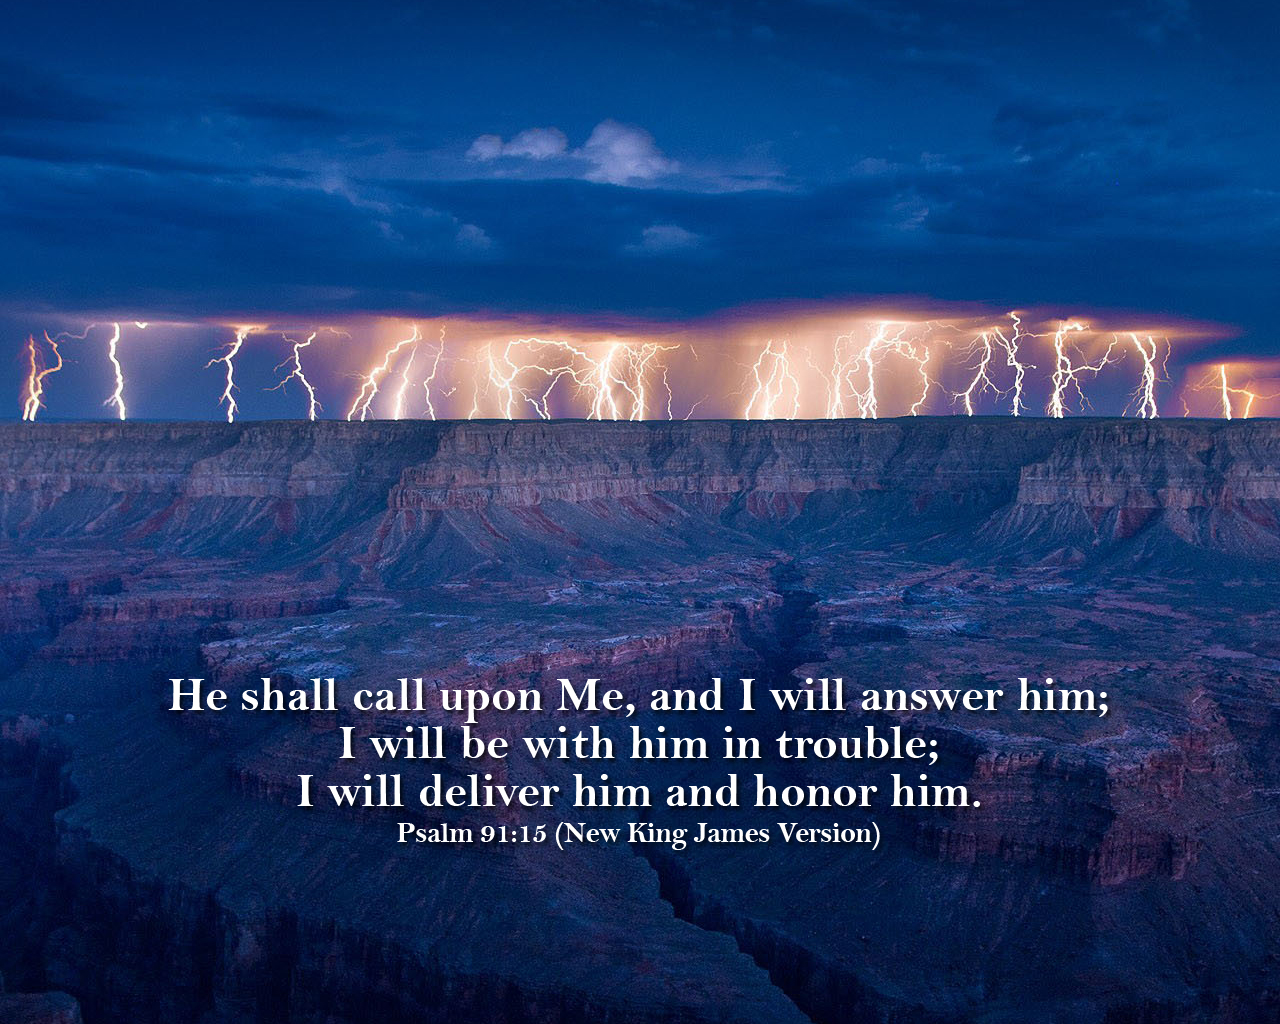 nkjv psalm 91 15 wallpaper 1